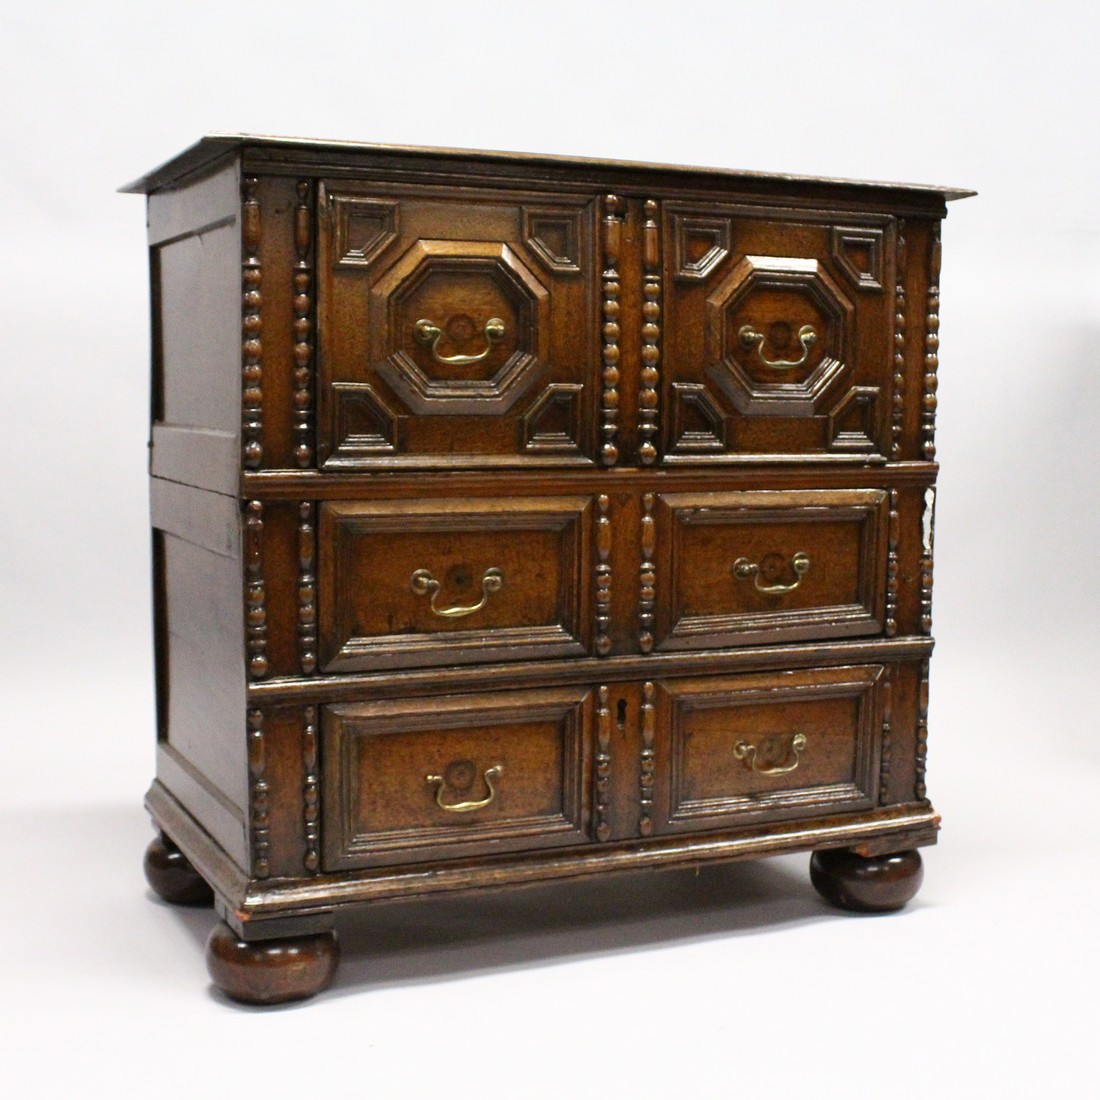 A GOOD LATE 17TH CENTURY LIGHT OAK TWO PIECE LINEN FOLD FRONT CHEST OF THREE DRAWERS, with